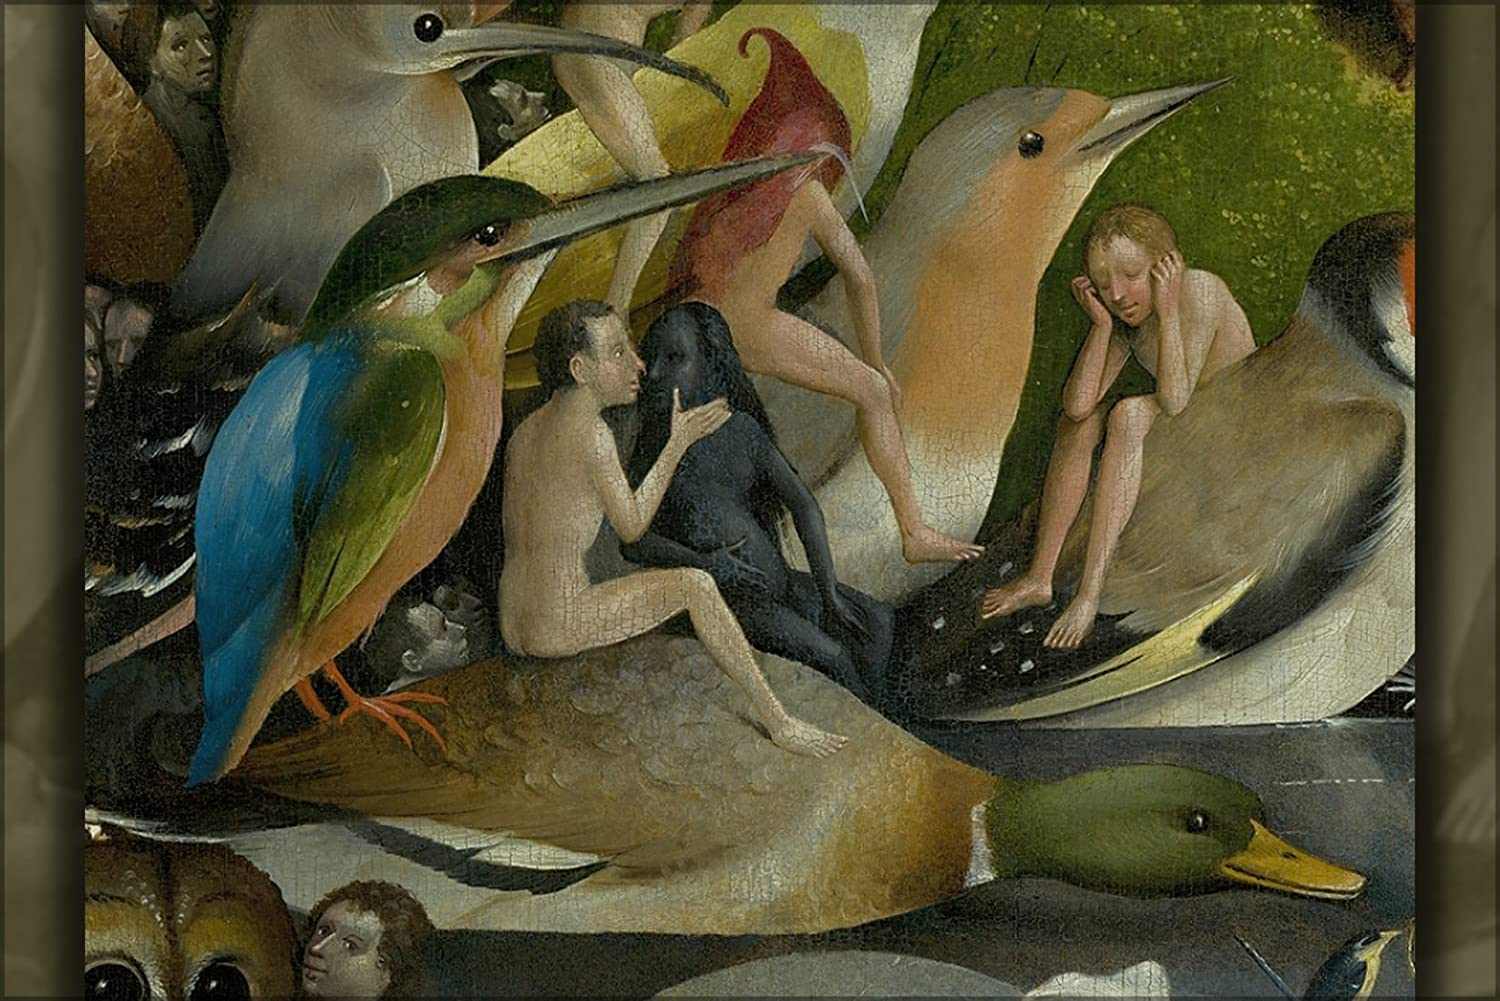 """24""""x36"""" Gallery Poster, Bosch, Hieronymus - The Garden of Earthly Delights 1450-1516"""